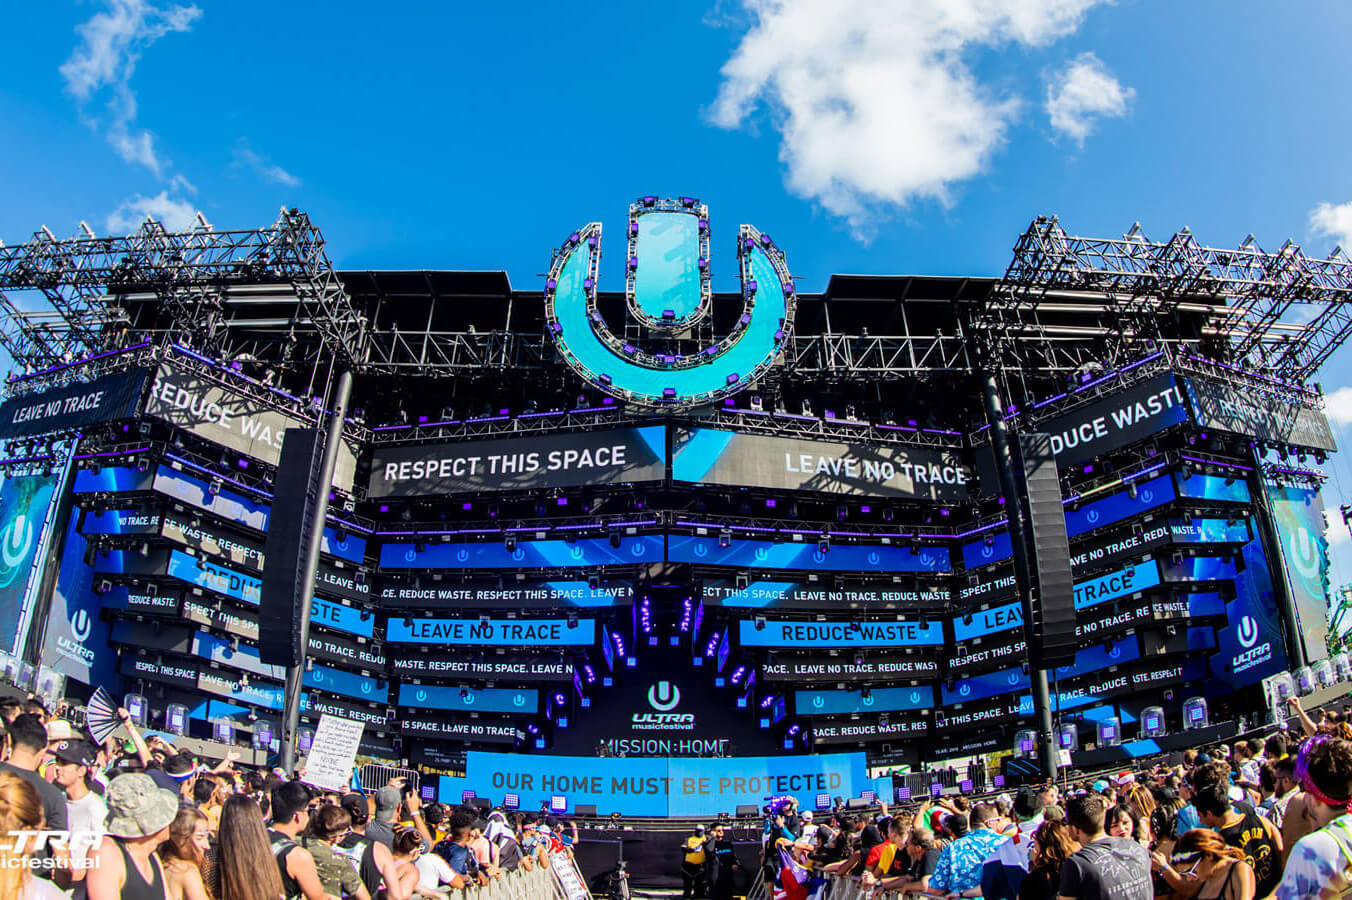 Miami Winter Music Conference 2020 Dates.Ultra Music Festival S Mission Home To Continue In 2020